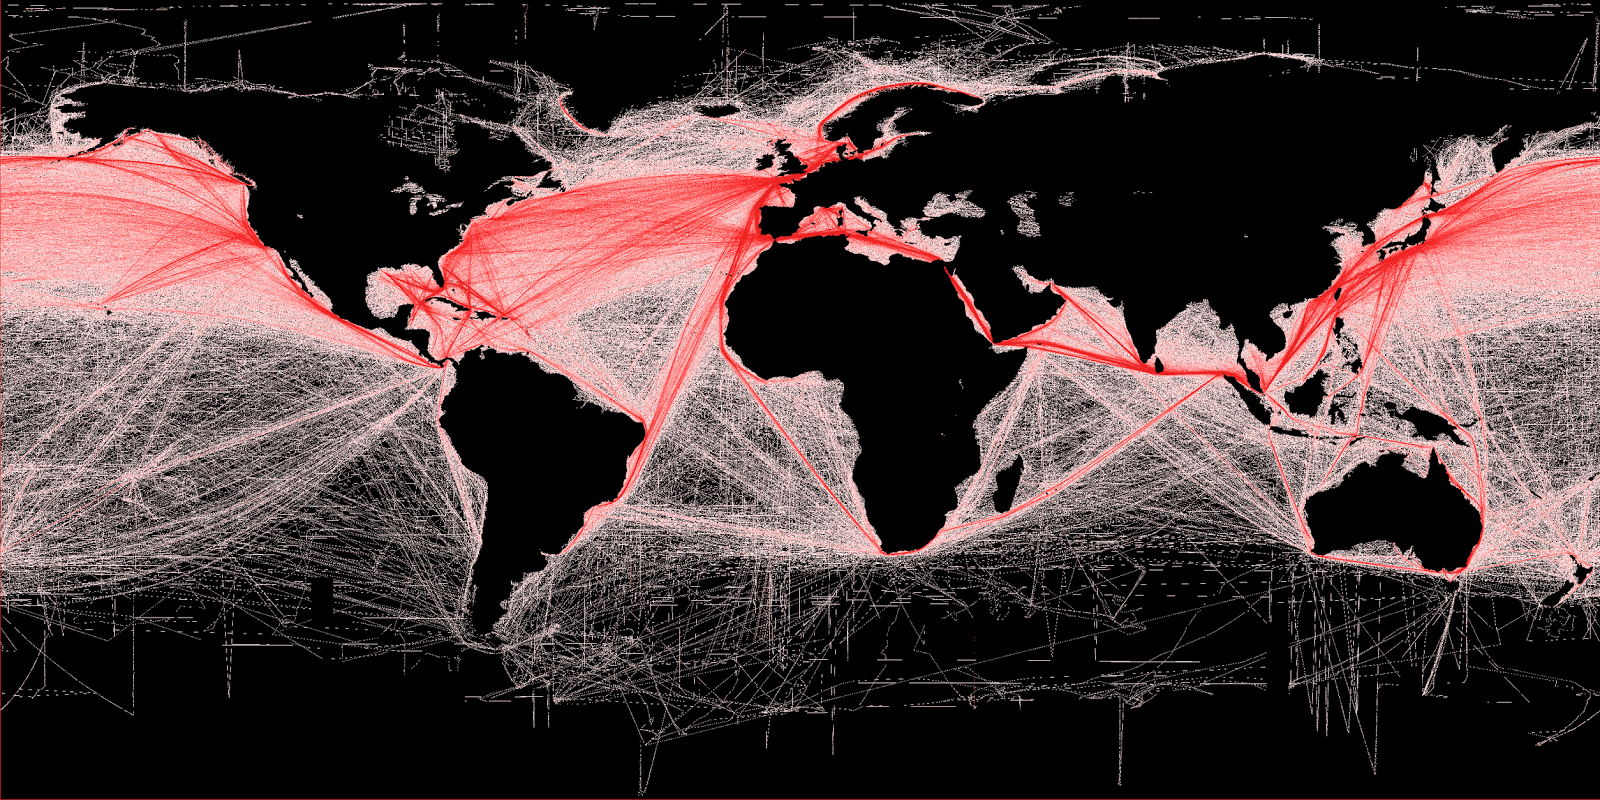 Shipping routes, showing relative density of commercial shipping around the world